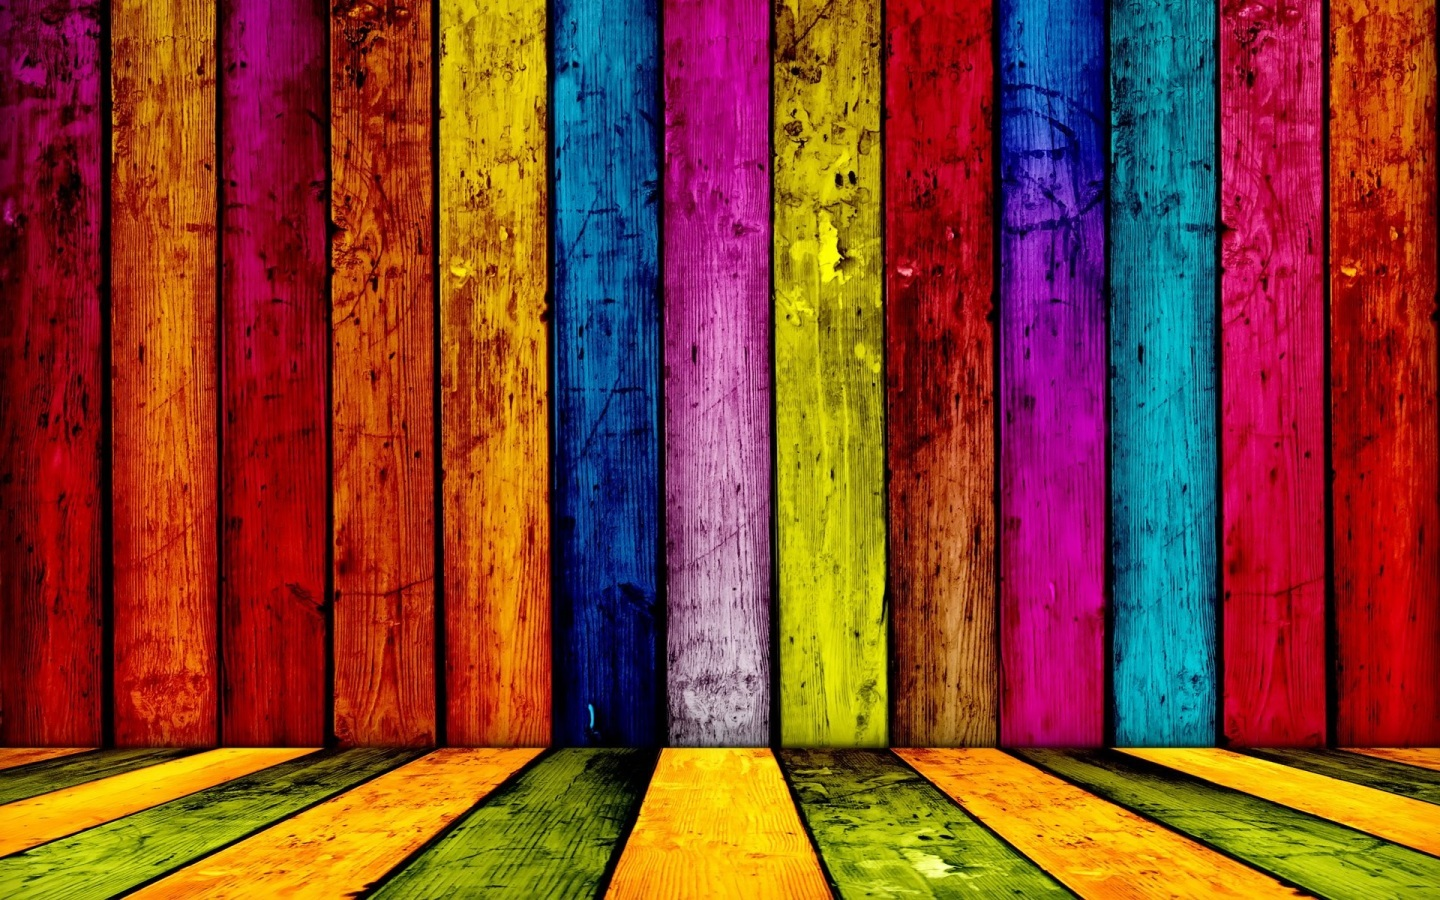 Colourful Wallpapers, Pictures, Images - photo#36